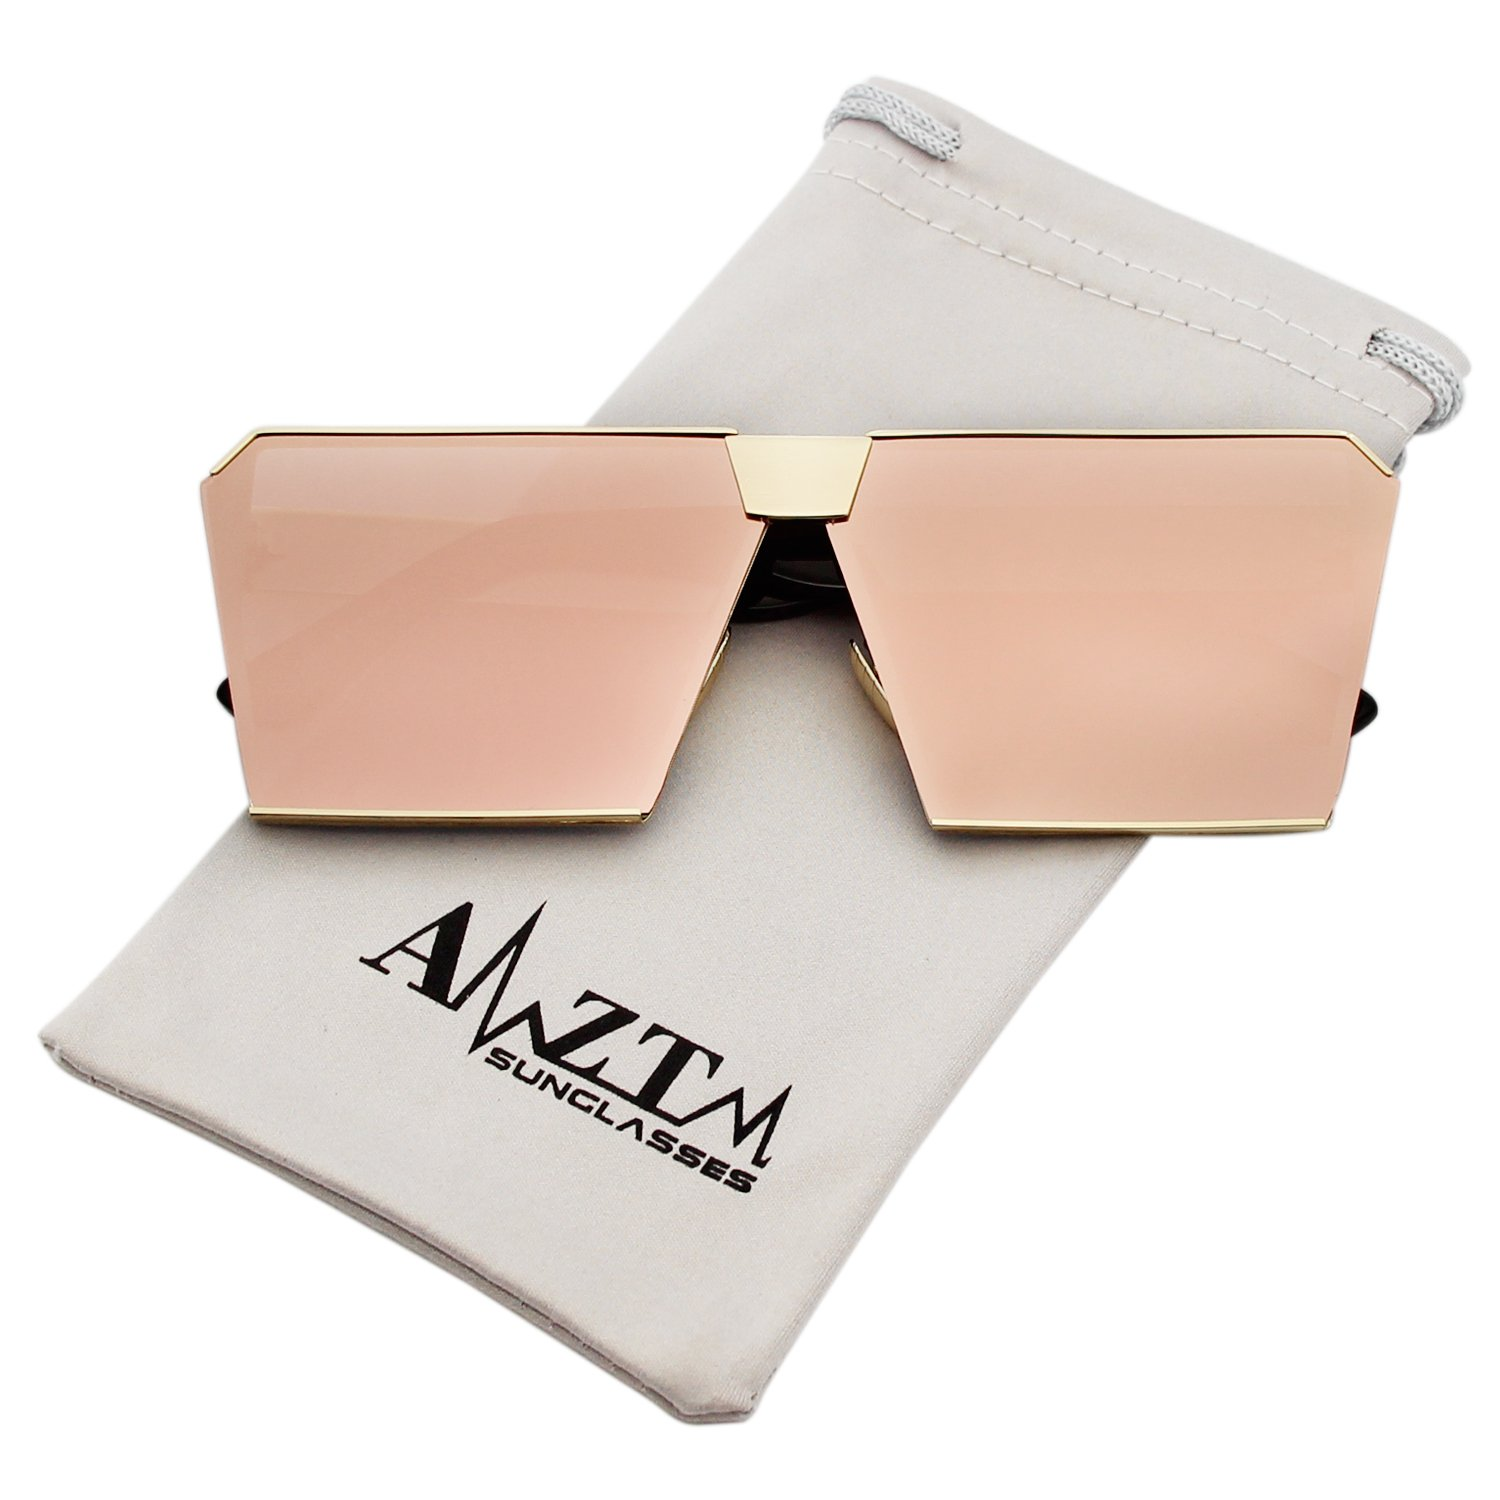 AMZTM Trend Fashion Square Metal Frame Mirrored Reflective REVO Lens Oversized Polarized Sunglasses For Women and Men (Golden Frame and Pink Lens, 63)